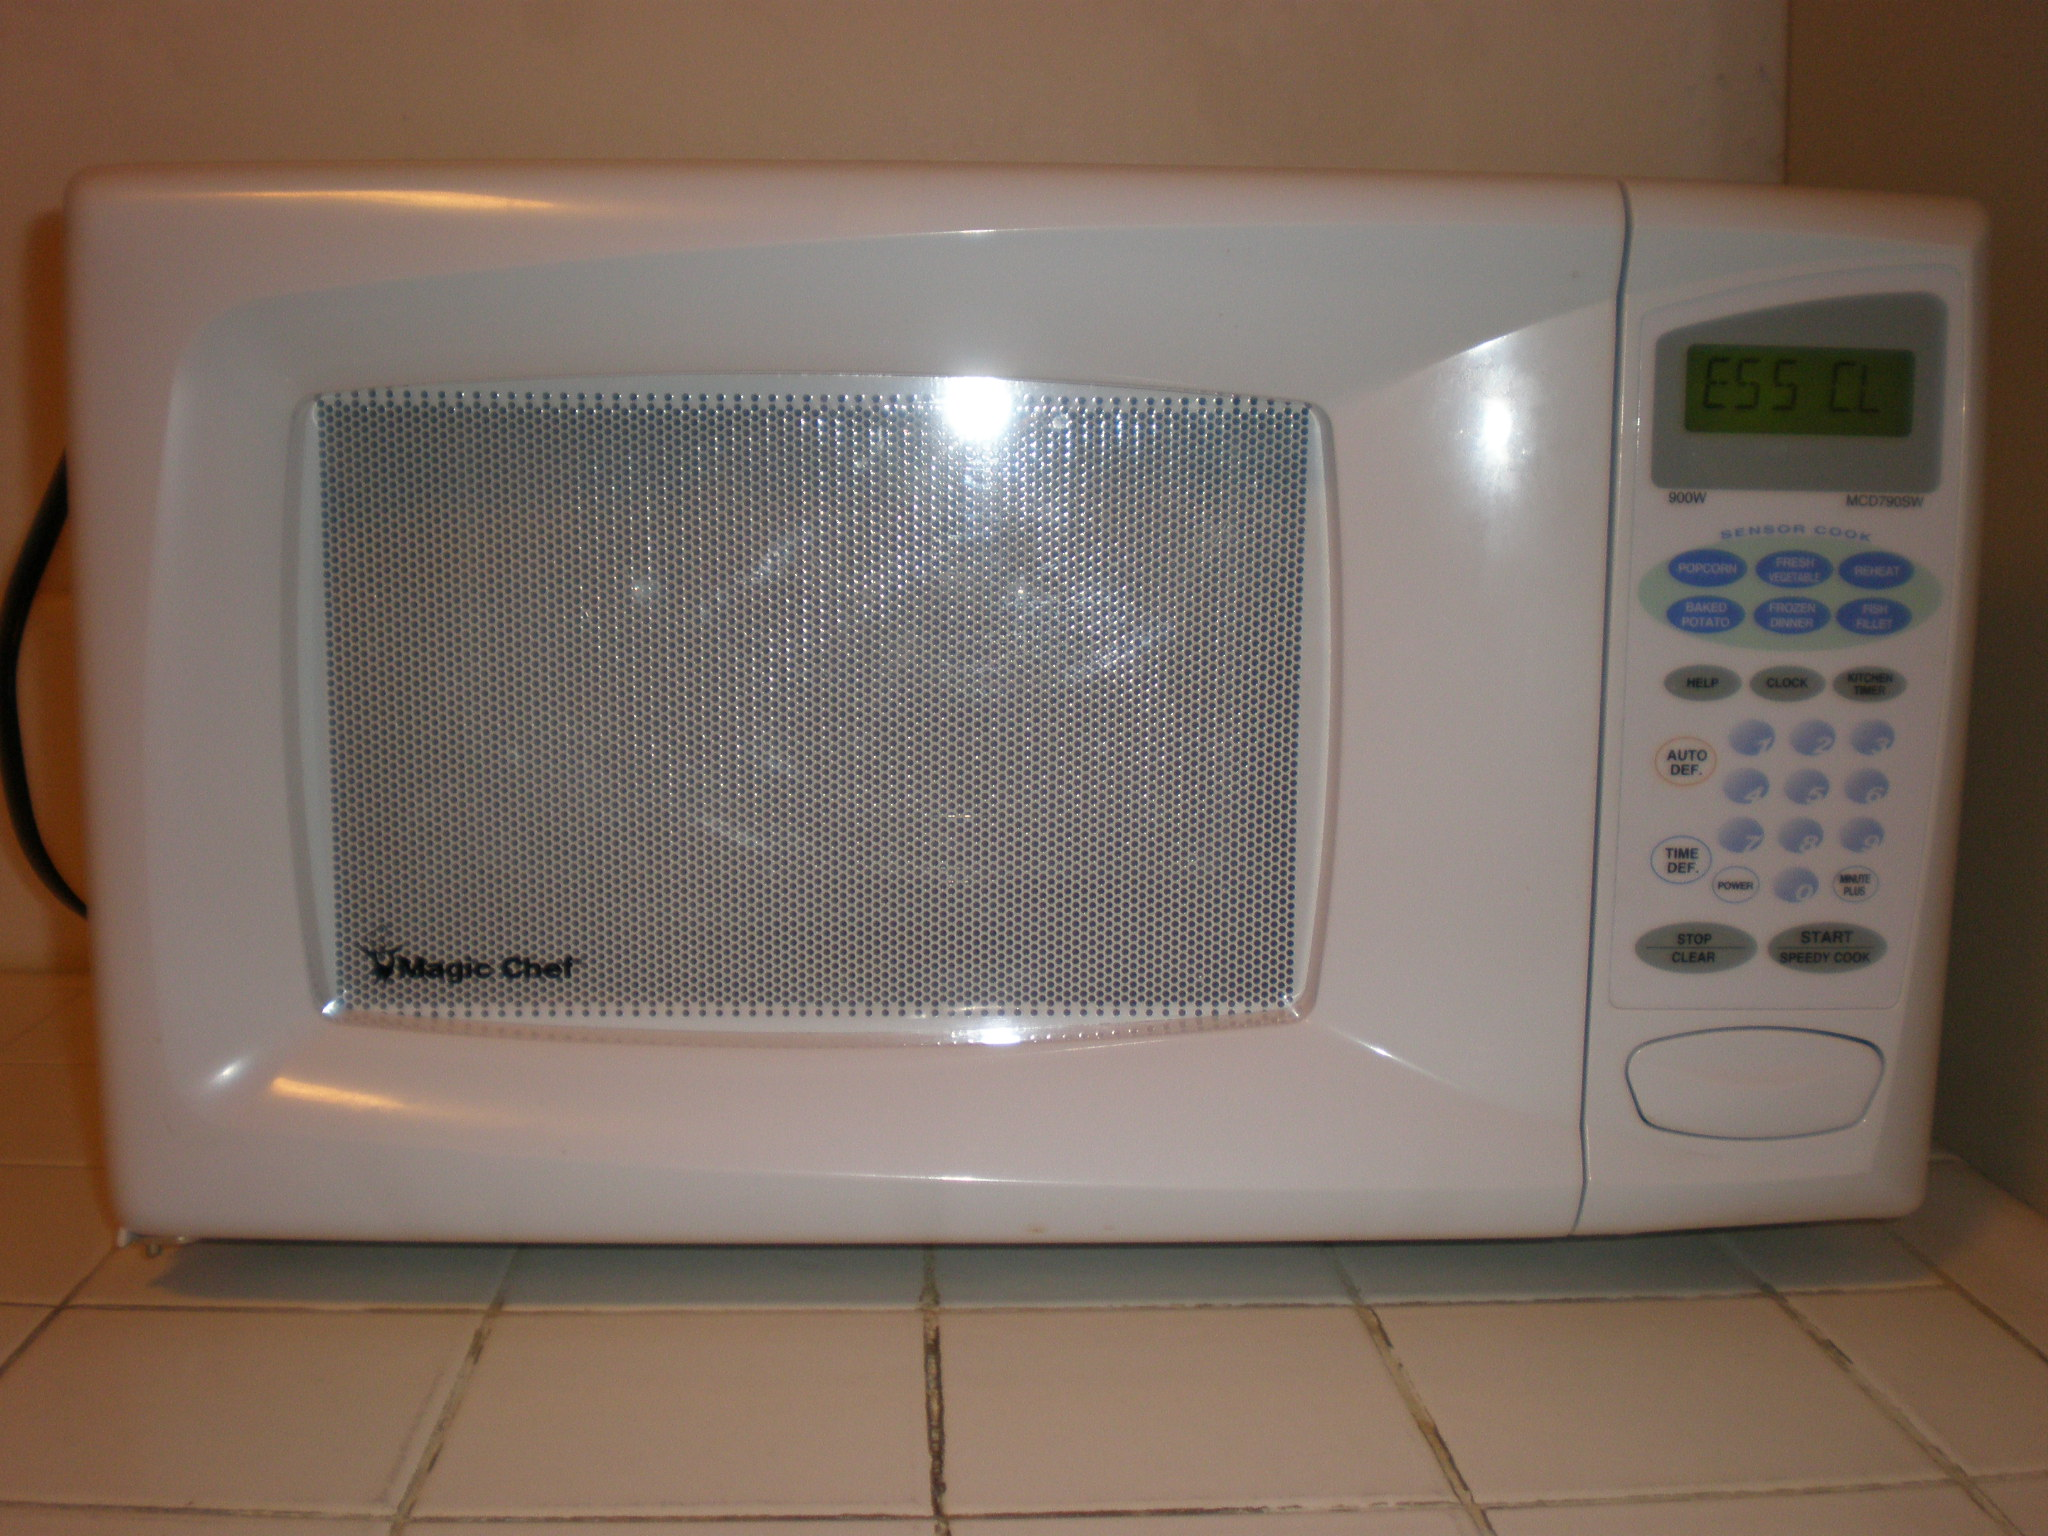 https commons wikimedia org wiki file magic chef mcd790sw microwave front jpg